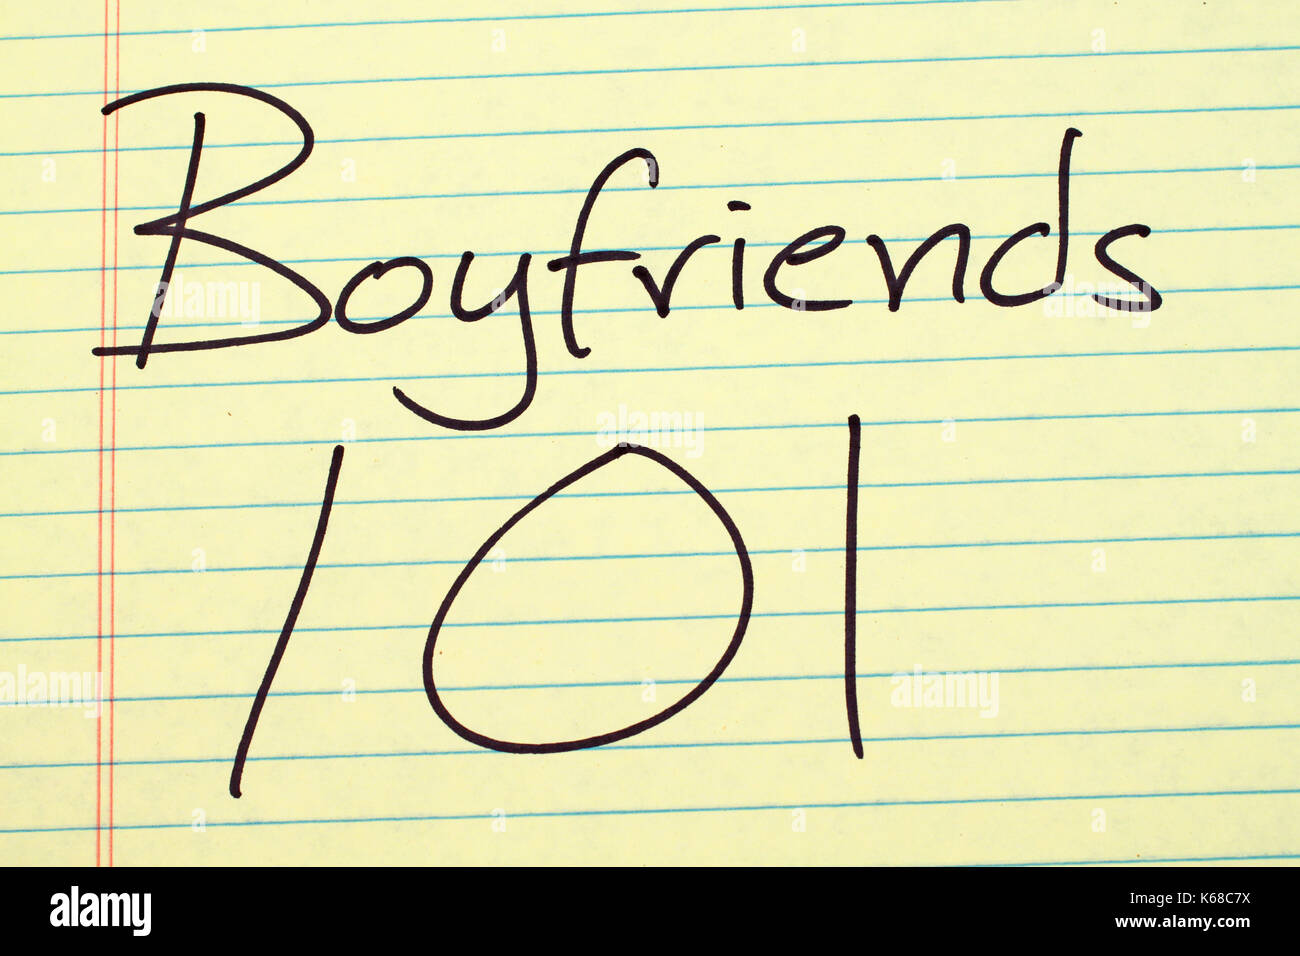 The words 'Boyfriends 101' on a yellow legal pad - Stock Image